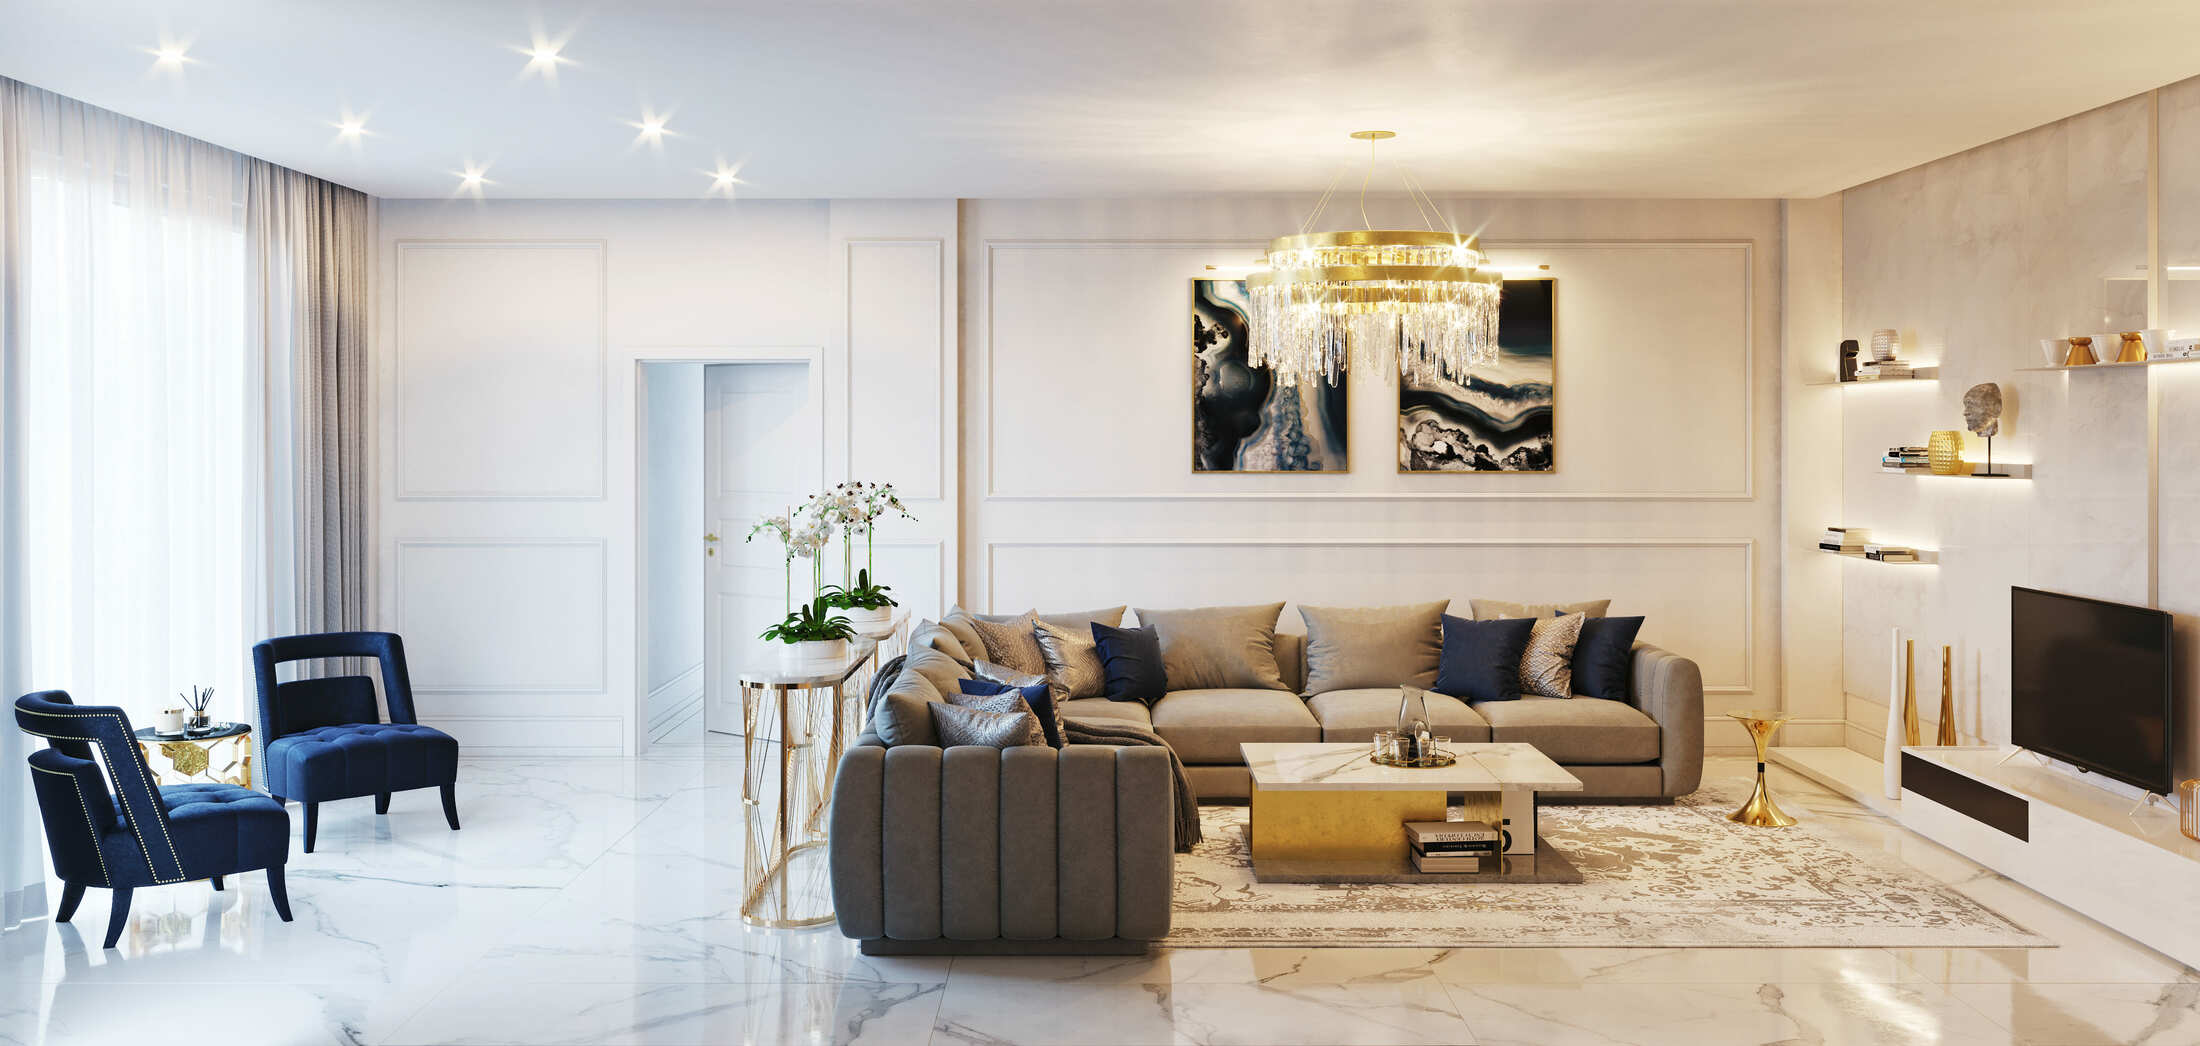 Atelier KV - Luxury Interior Design Studio in London